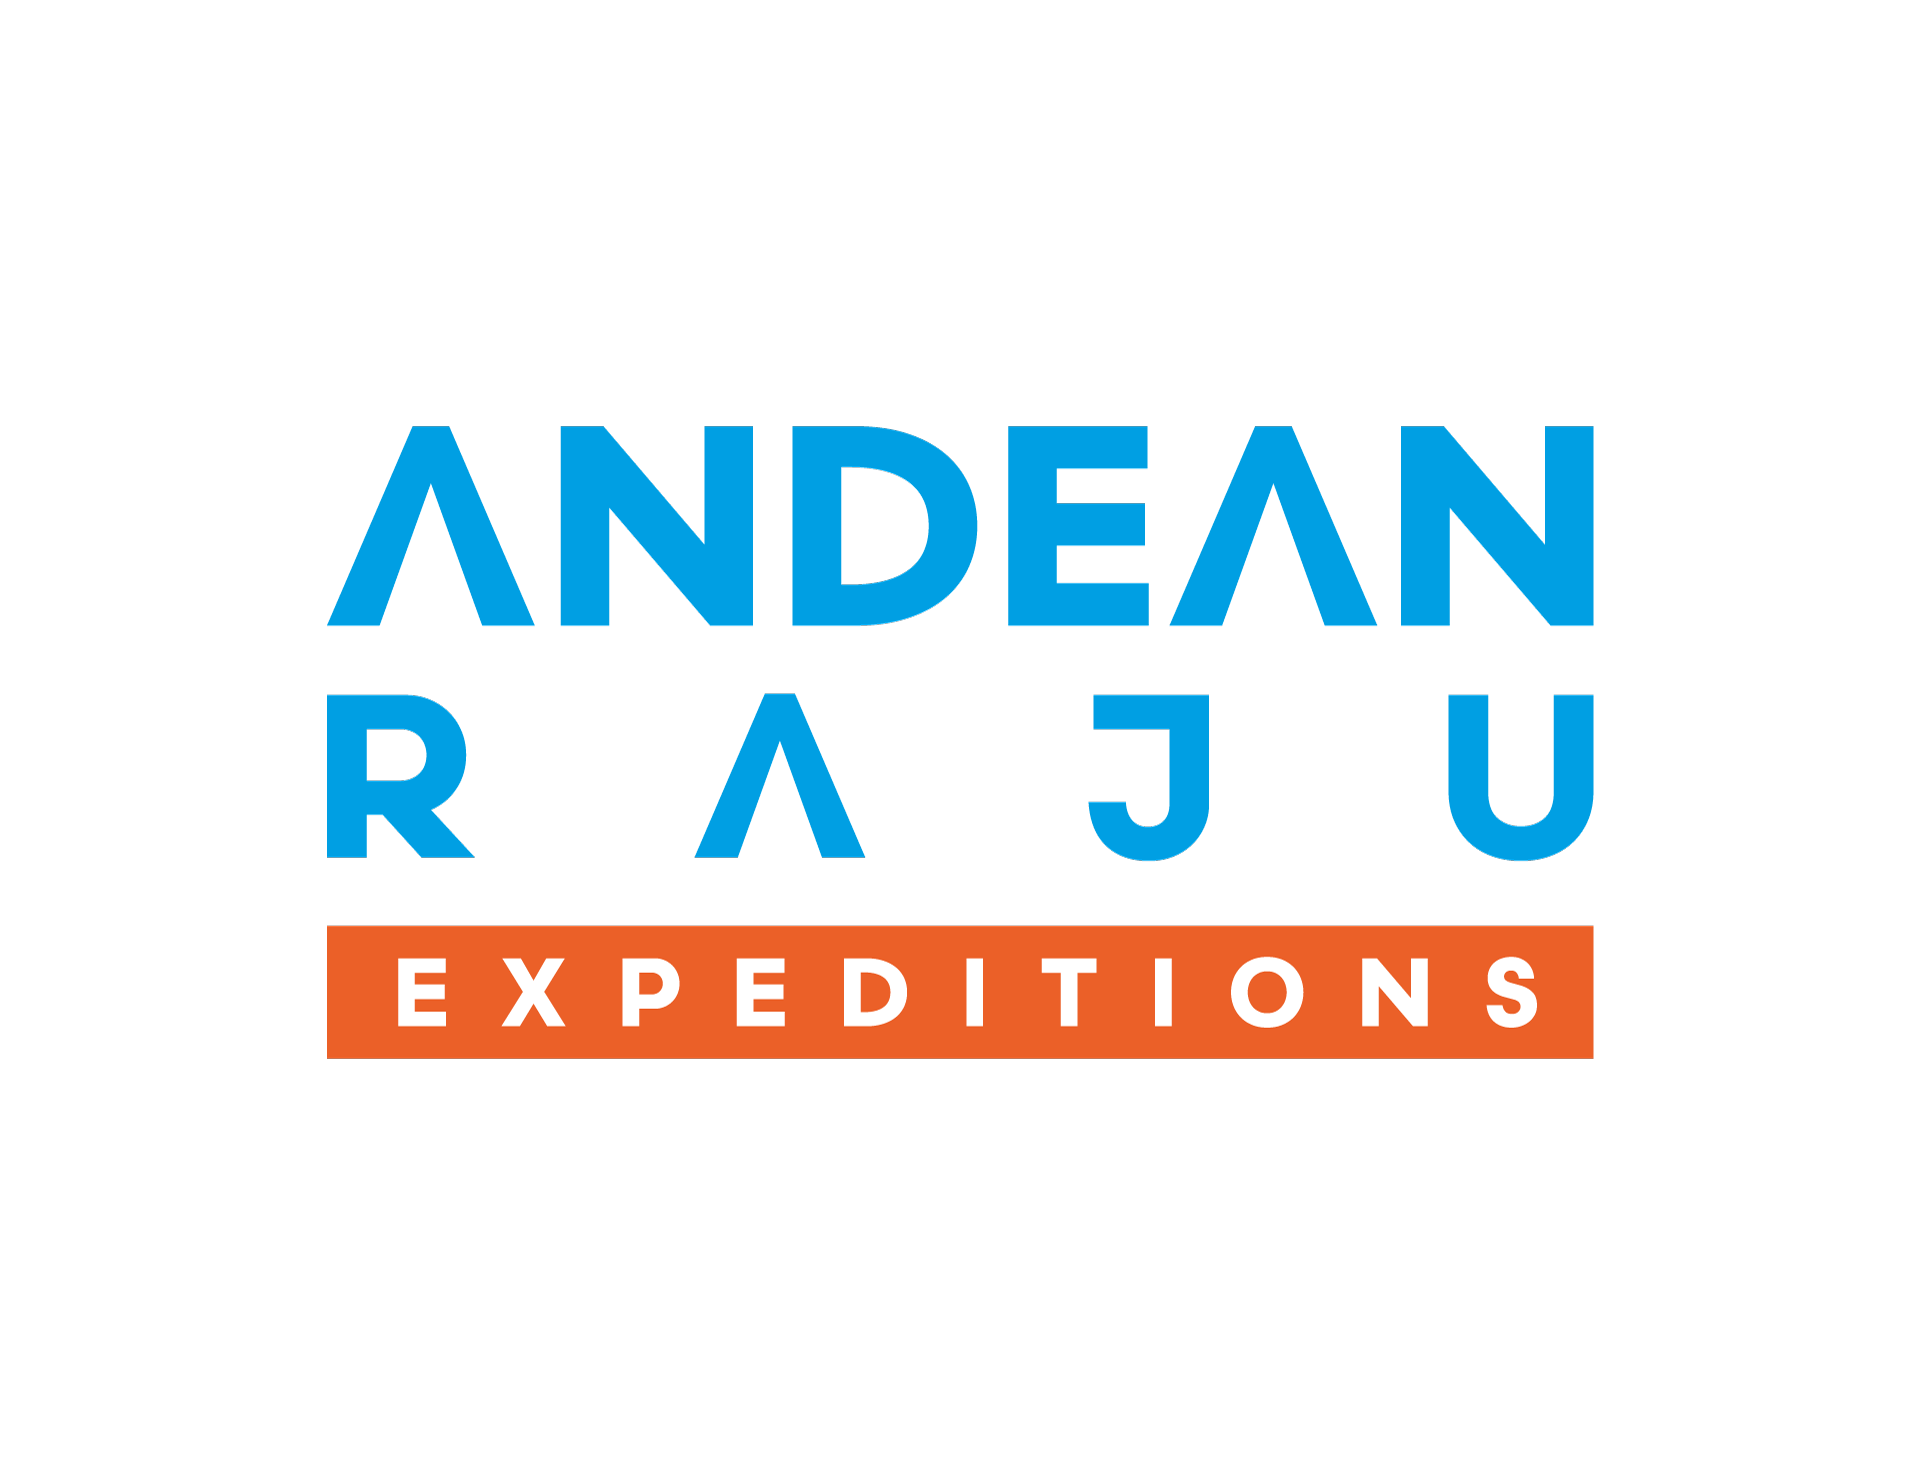 Andean Raju Expeditions